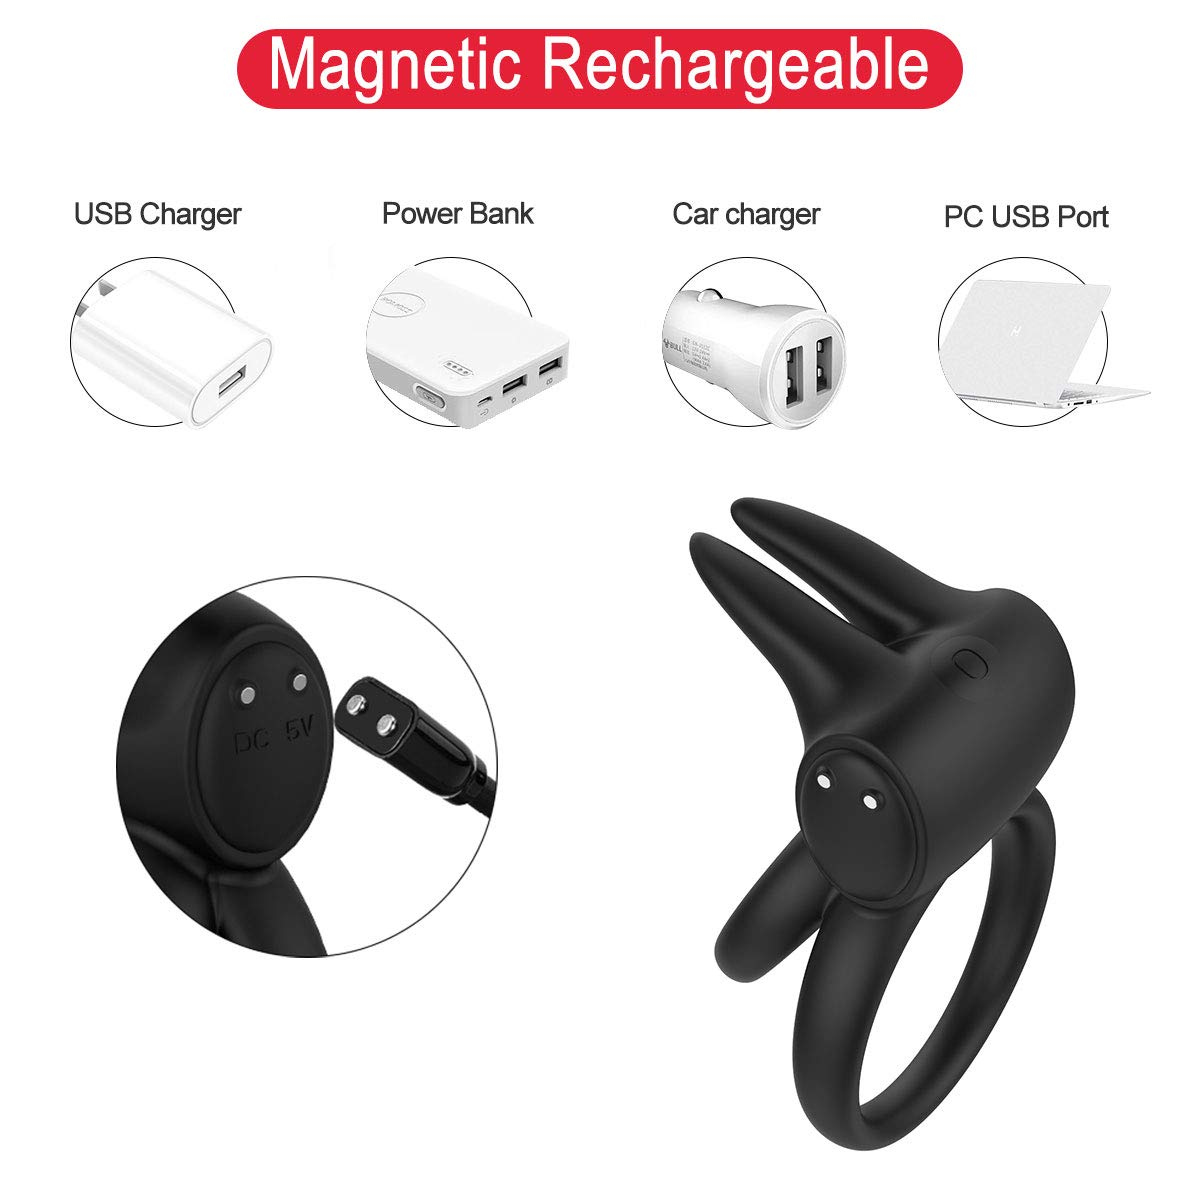 Cock Ring Vibrator with Rabbit Ears Double Ring 7 Vibration Modes for Couples, PALOQUETH Wireless Remote Control Vibrating Penis Enhancer Ring Vibrator Rechargeable Waterproof Travel Lock Function by PALOQUETH (Image #6)